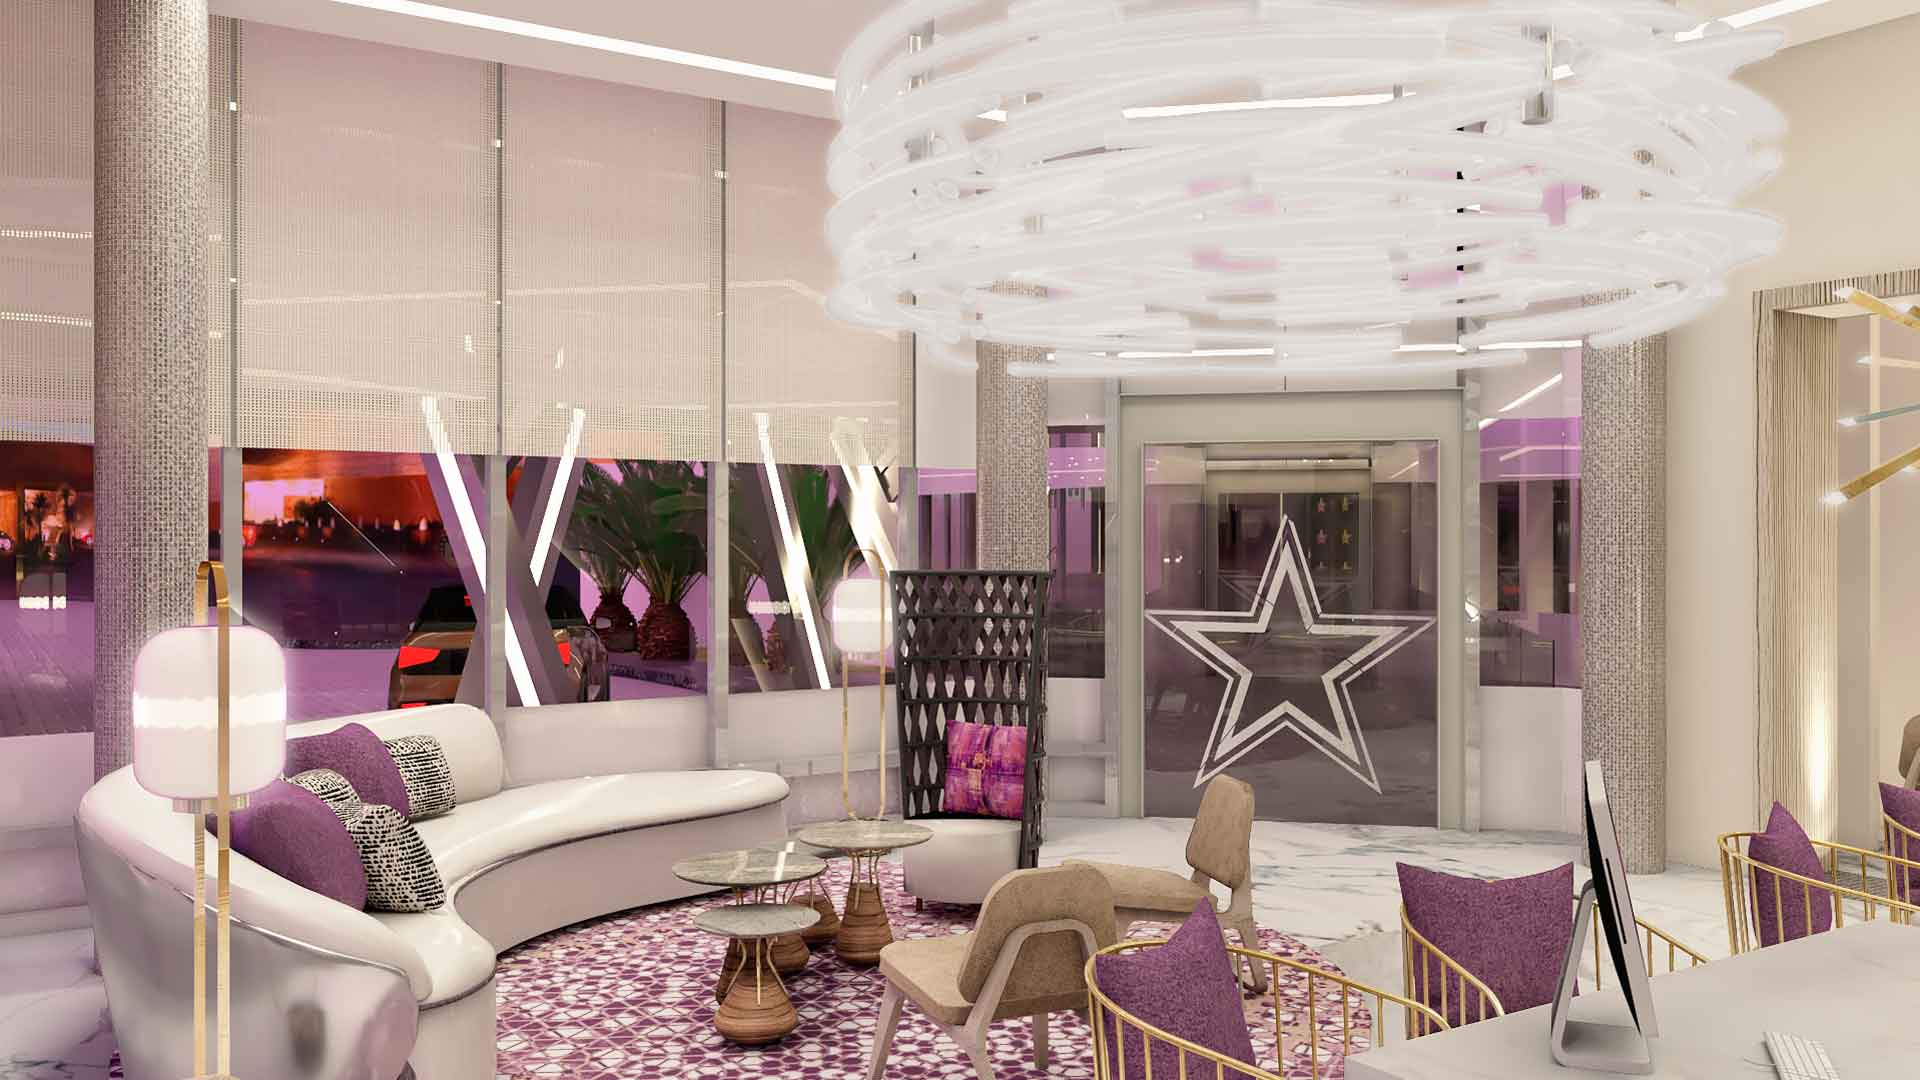 Abrirá el primer hotel Planet Hollywood en México